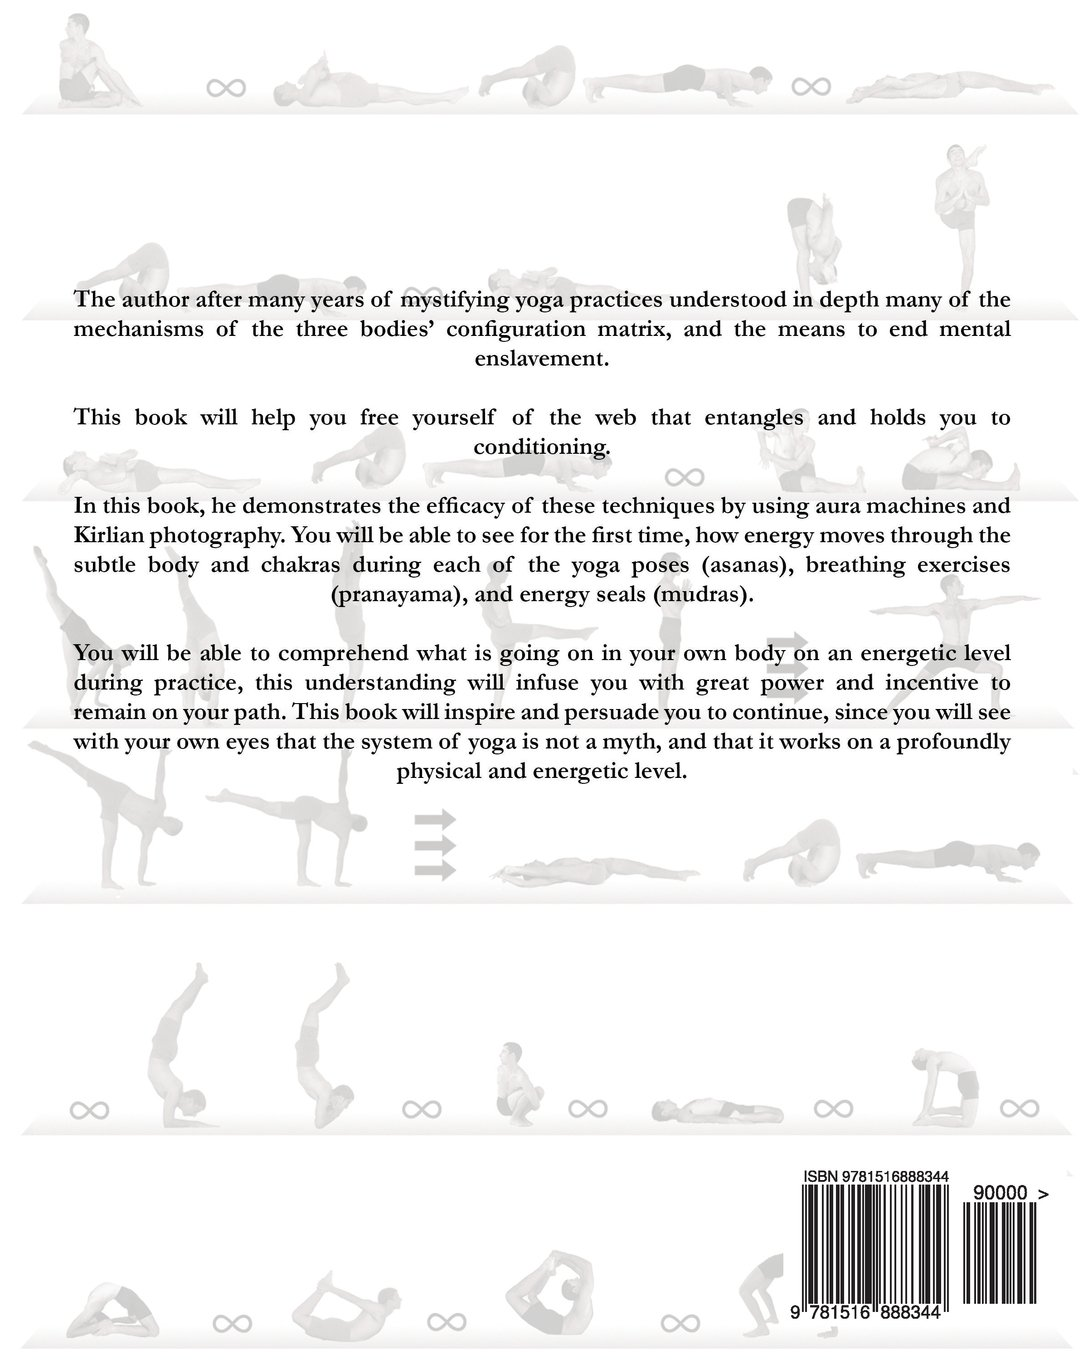 Amazon.com: The Secret Power of Yoga Adityam Adendum: Asana ...